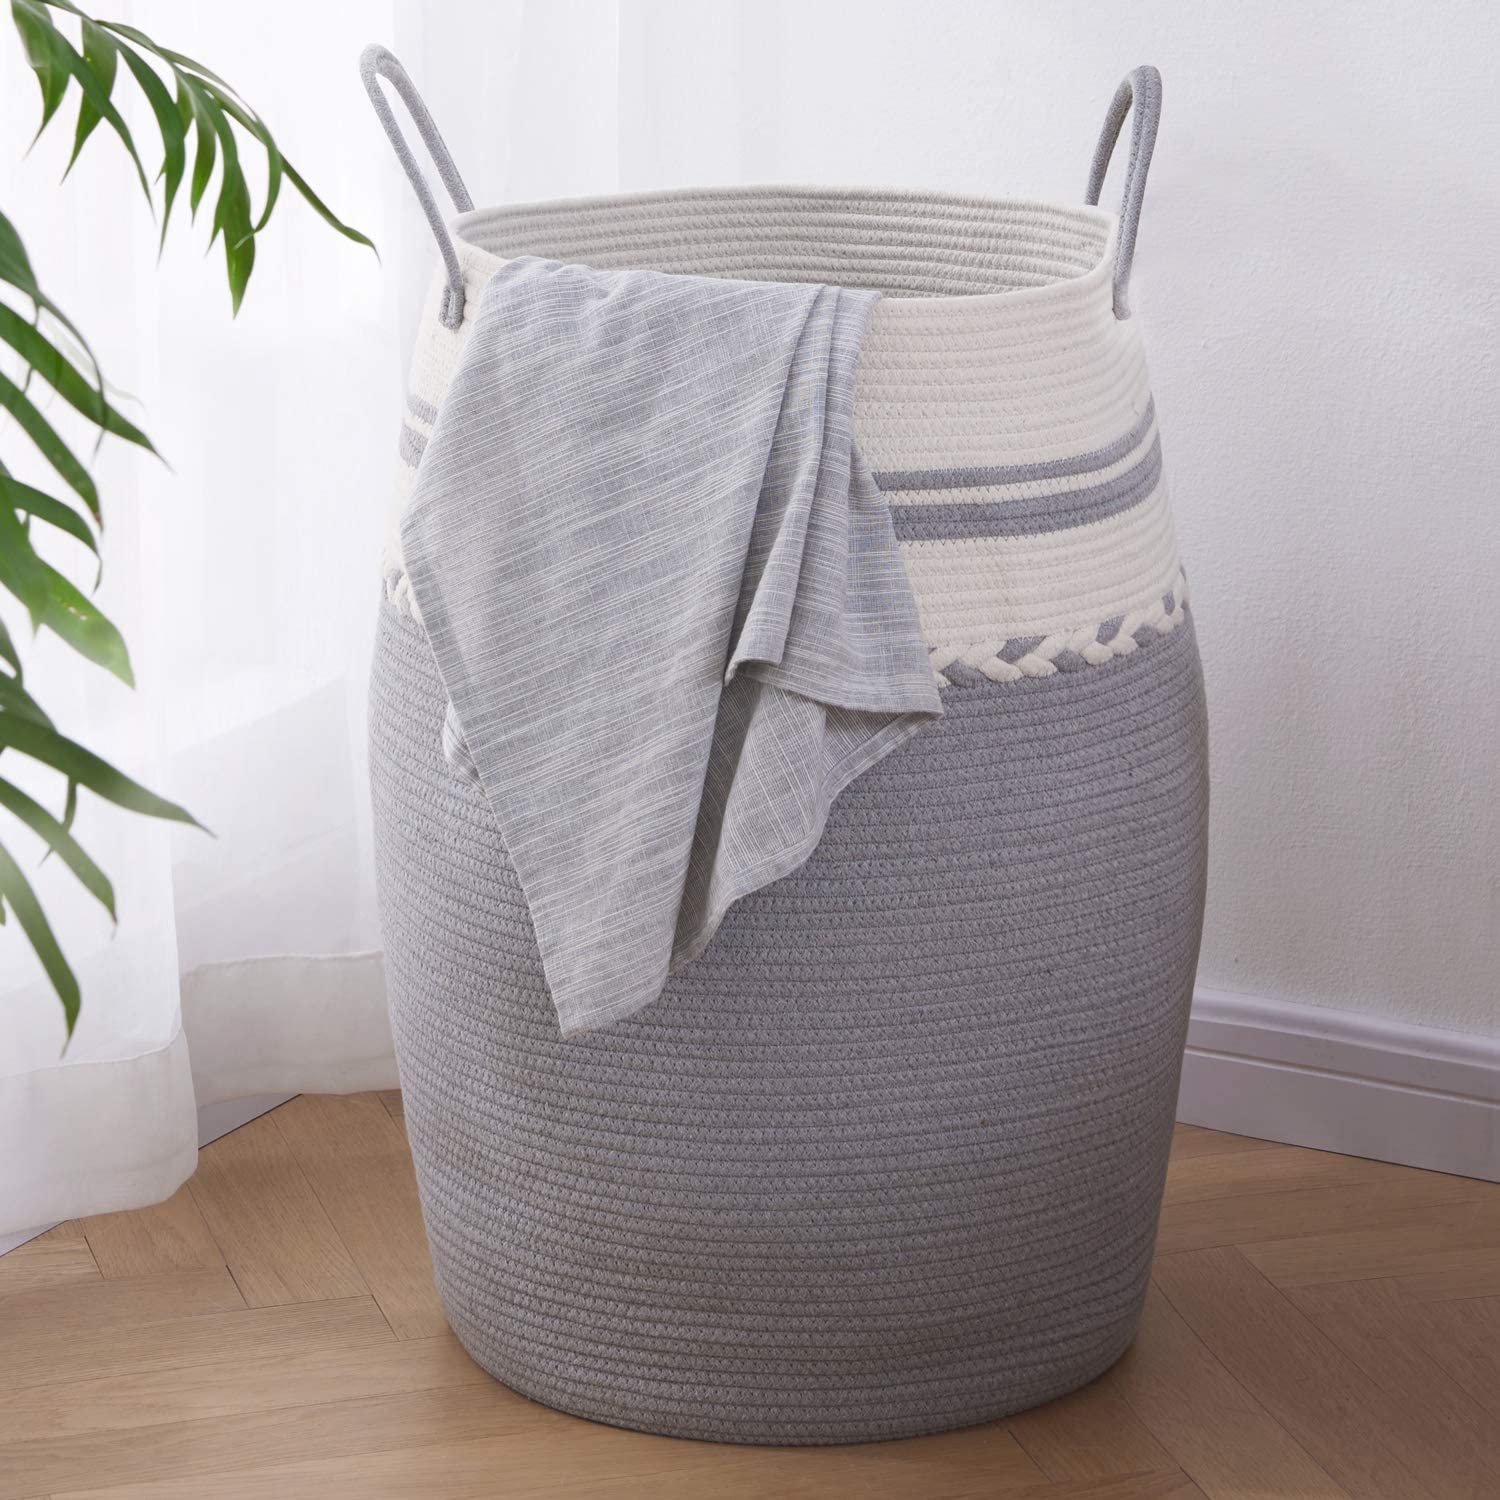 "OIAHOMY Laundry Hamper Woven Cotton Rope Large Clothes Hamper 25.6"" Height Tall Laundry Basket with Extended Cotton Handles for Storage Clothes Toys in Bedroom, Bathroom, Foldable (White Gray)"